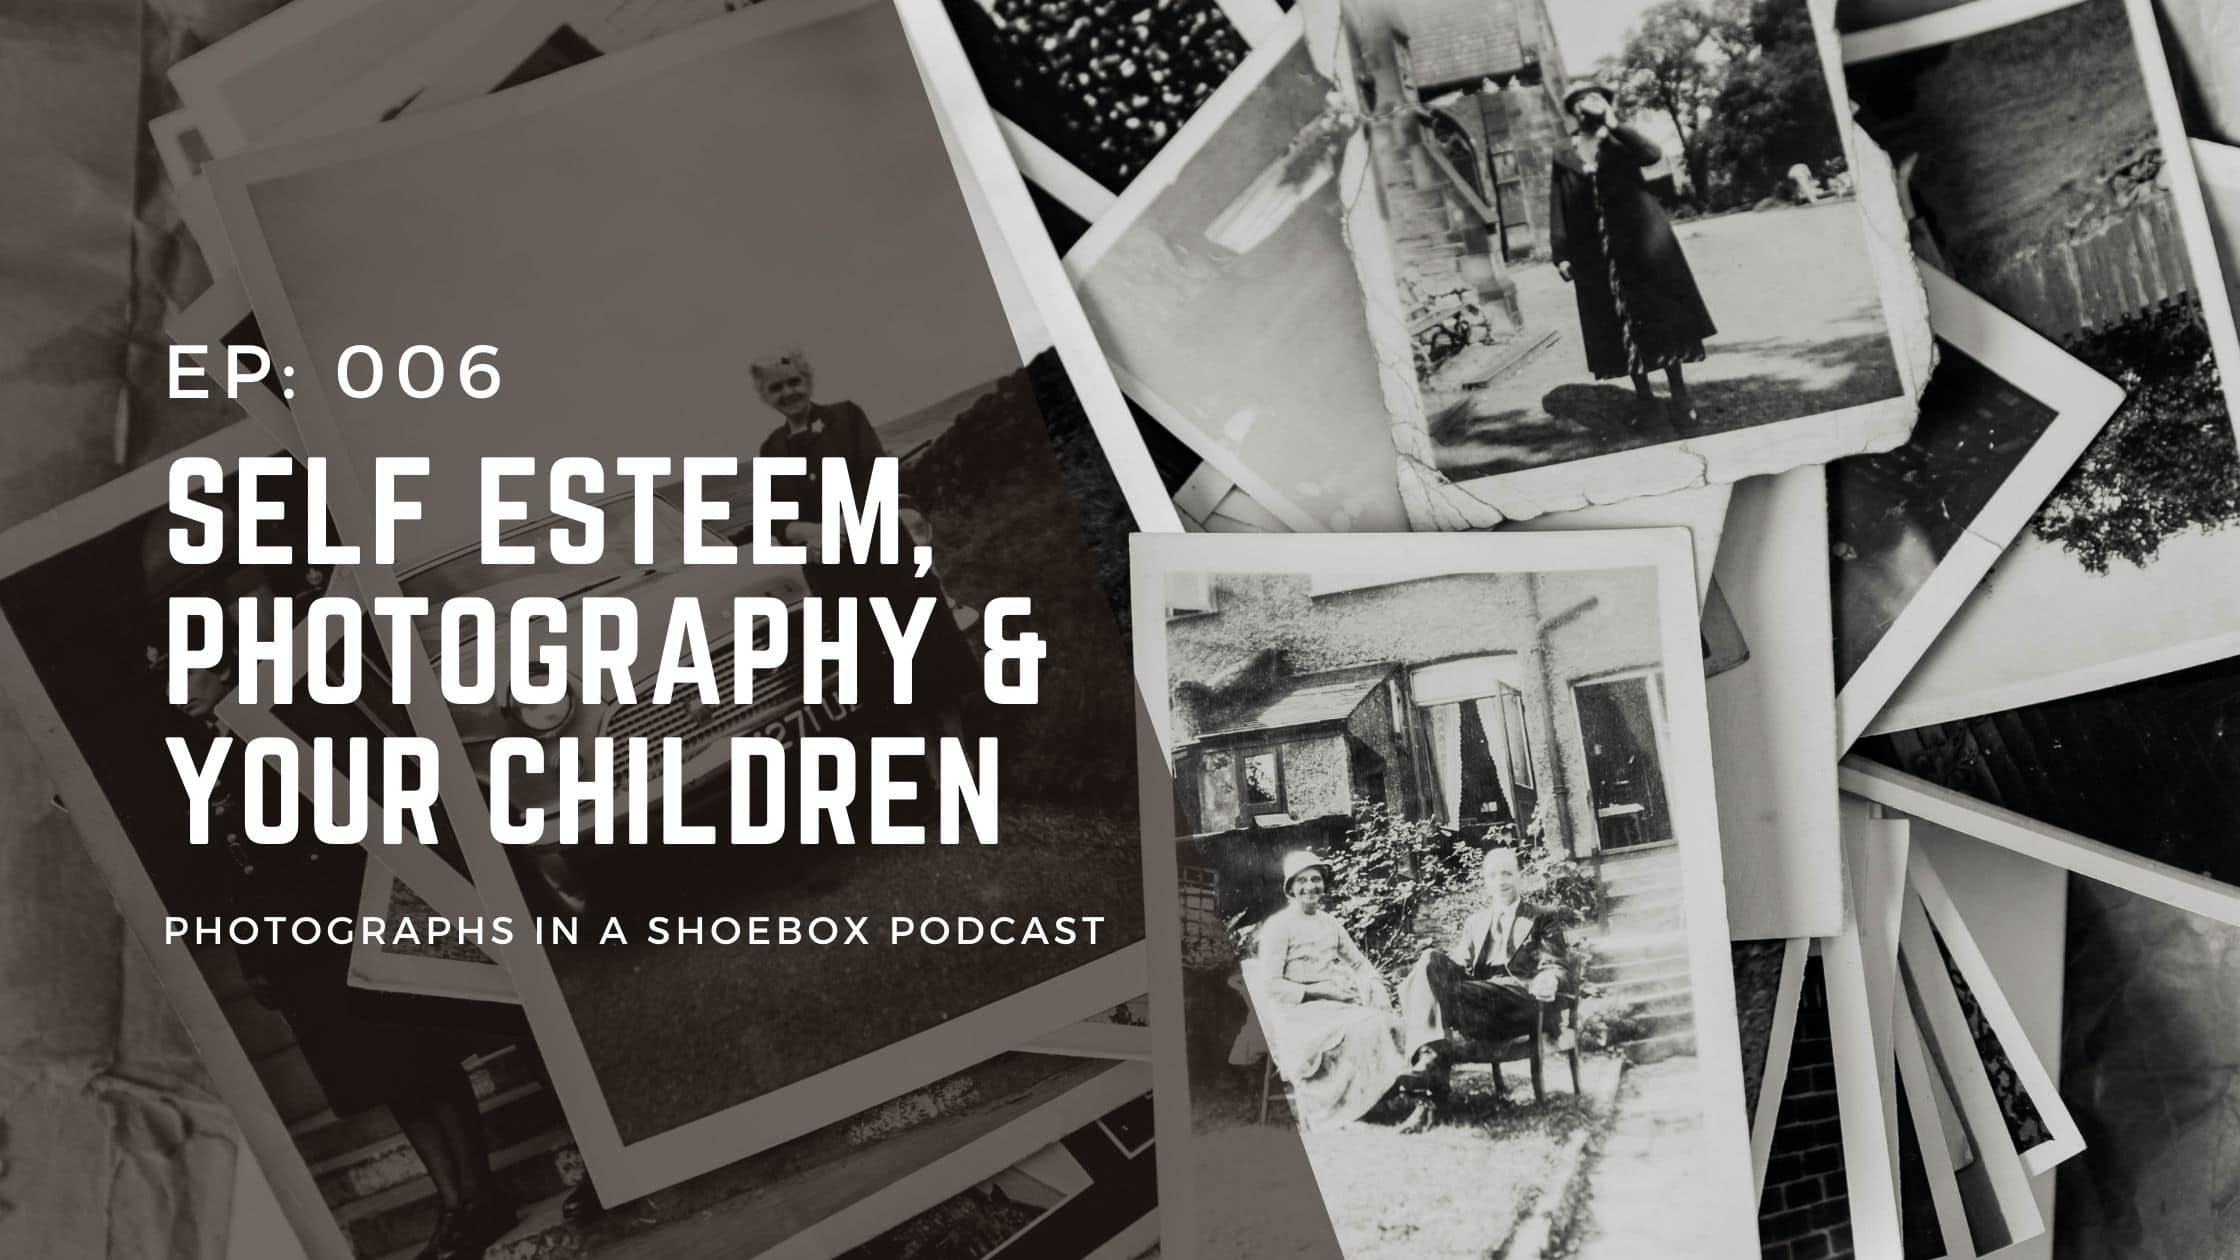 artwork for photographs in a shoebox podcast episode 6